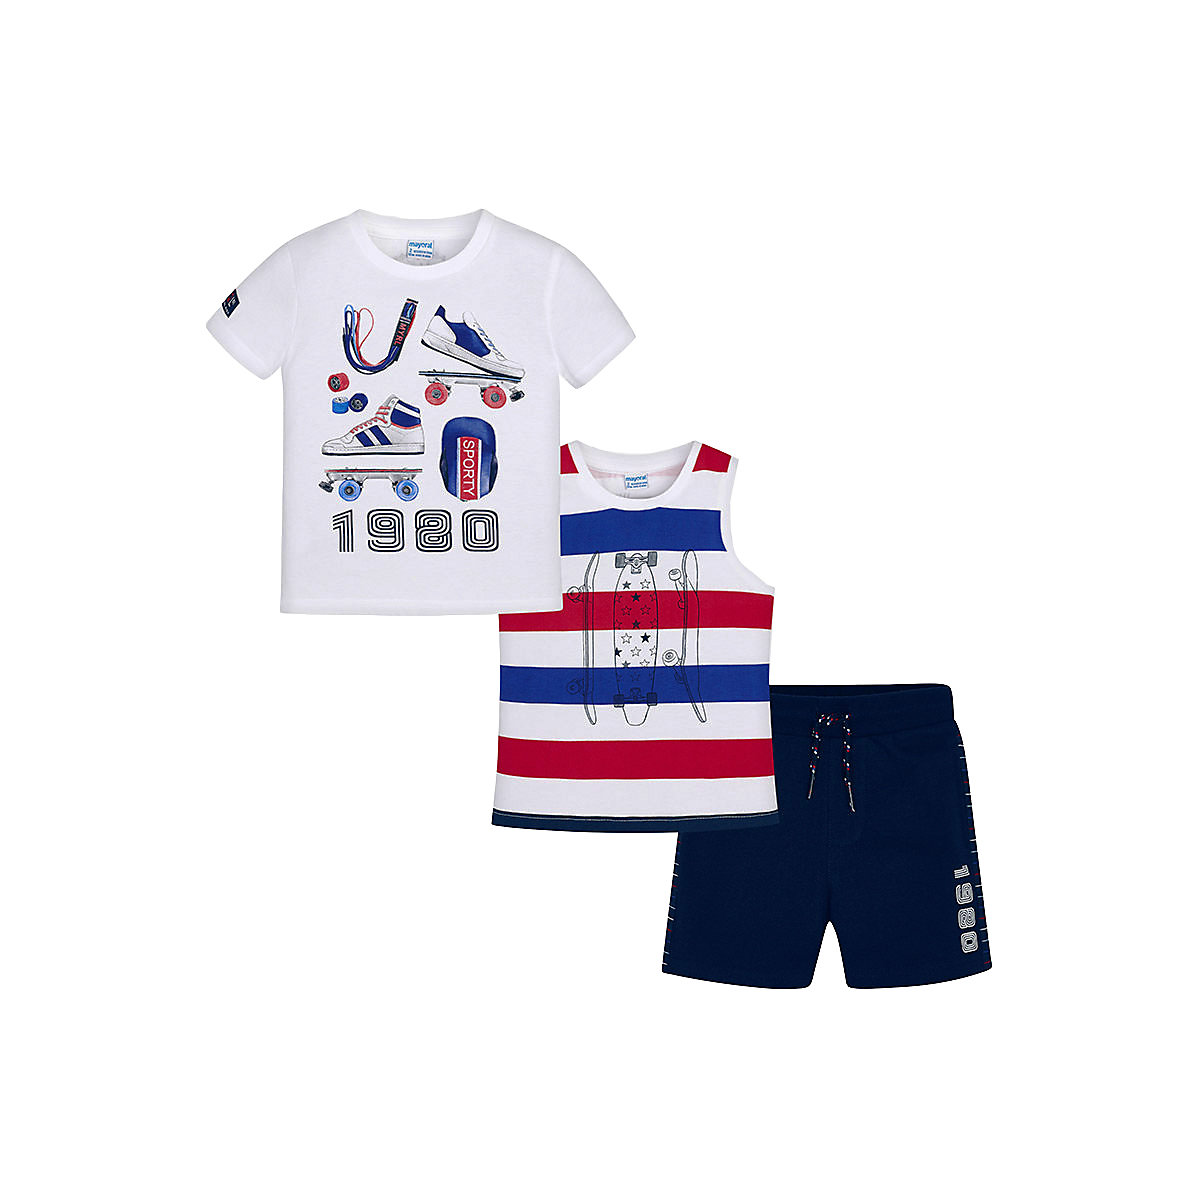 Baby's Sets MAYORAL 10681443 set of clothes for kids T-shirt legs shirt shorts girls and boys hot summer sportswear jerseys shorts skeleton pattern cycling sets for outdoor sport